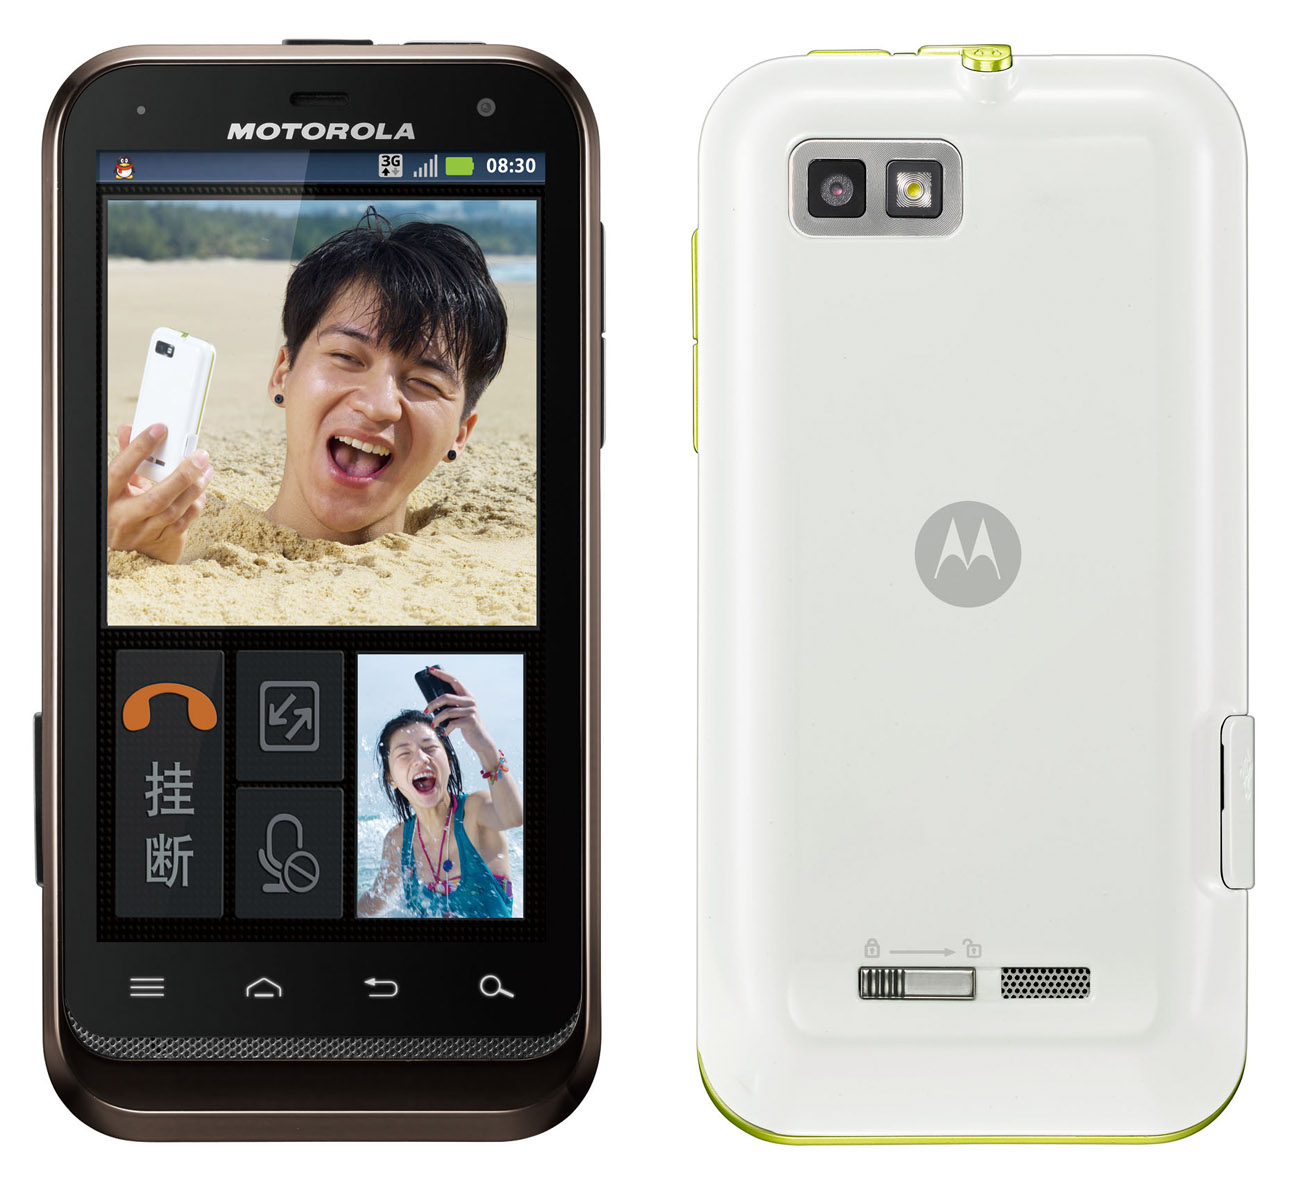 http://1.bp.blogspot.com/-h0kk58_NQSg/T1lsZbgpCUI/AAAAAAAAAMY/KQxoytsl5Qc/s1600/Motorola+DEFY+XT535+reviews+specs+and+price+in+india.jpg